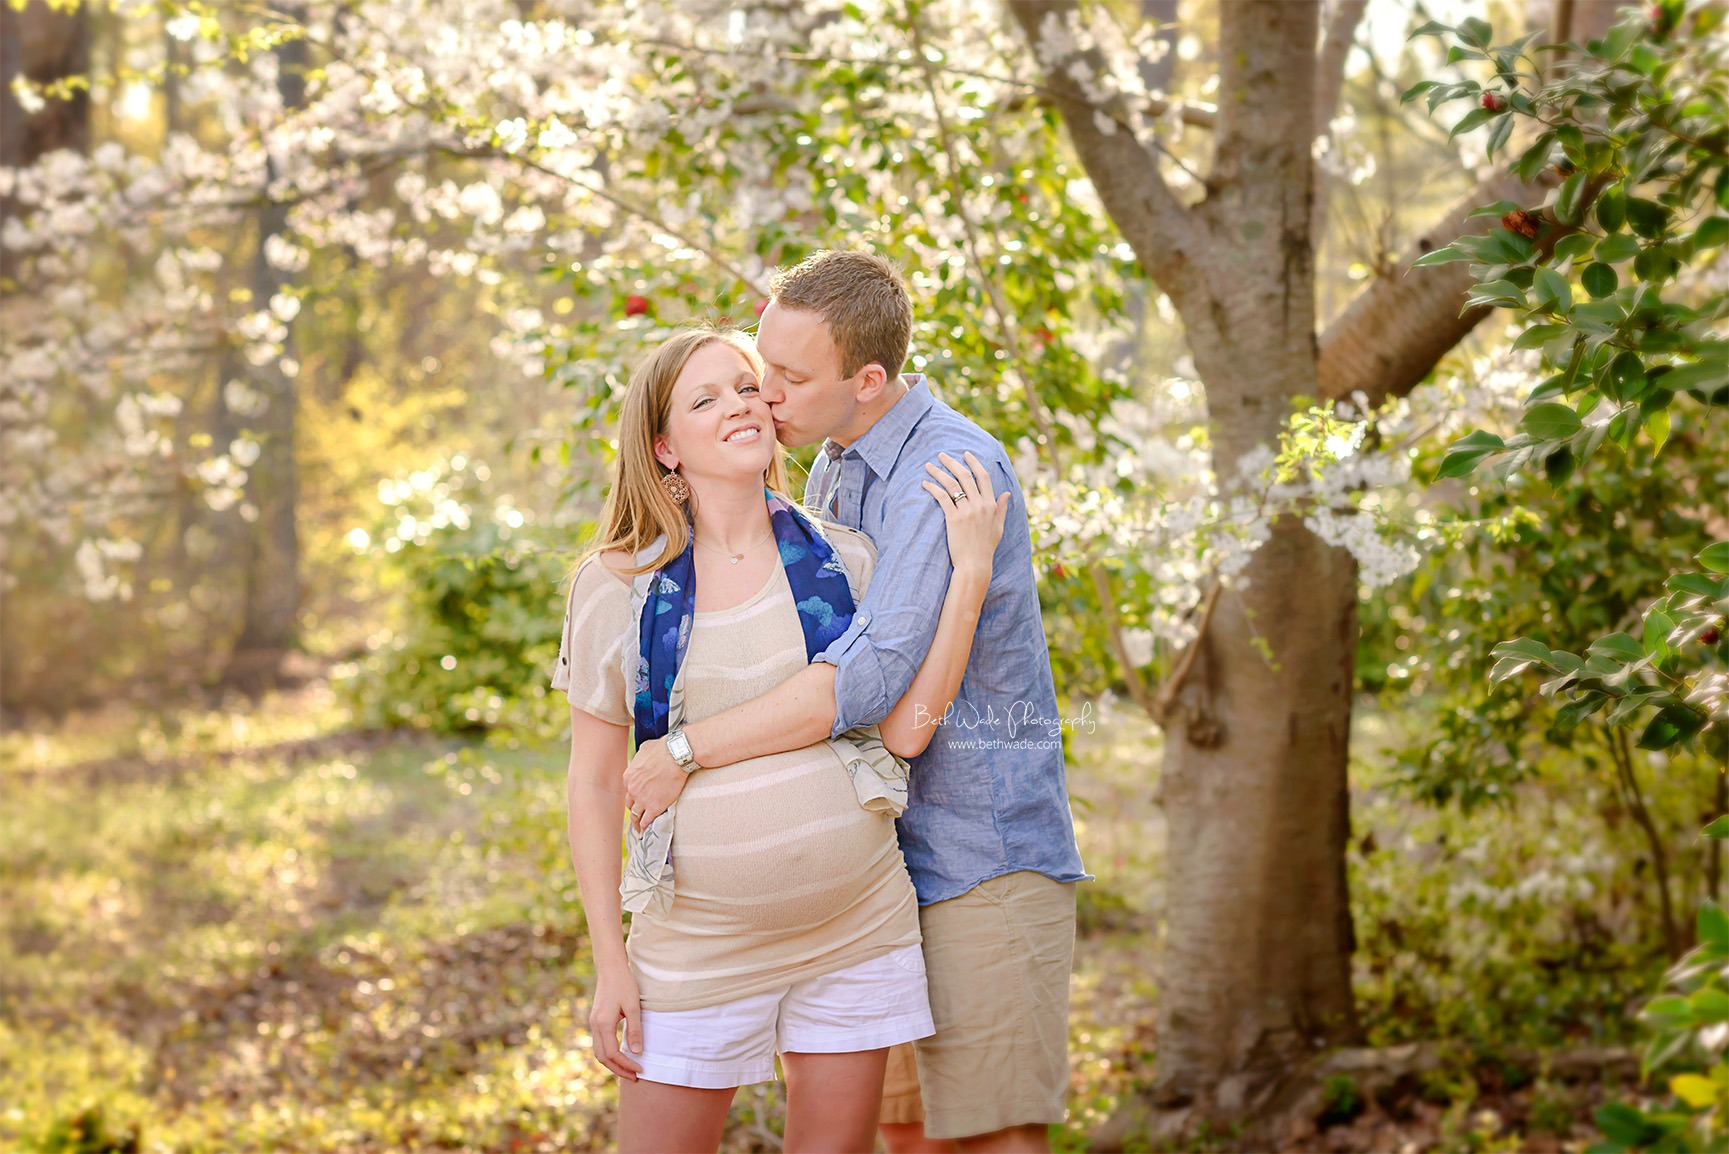 springtime pregnancy ~ almost family of 5 {charlotte maternity photographer}